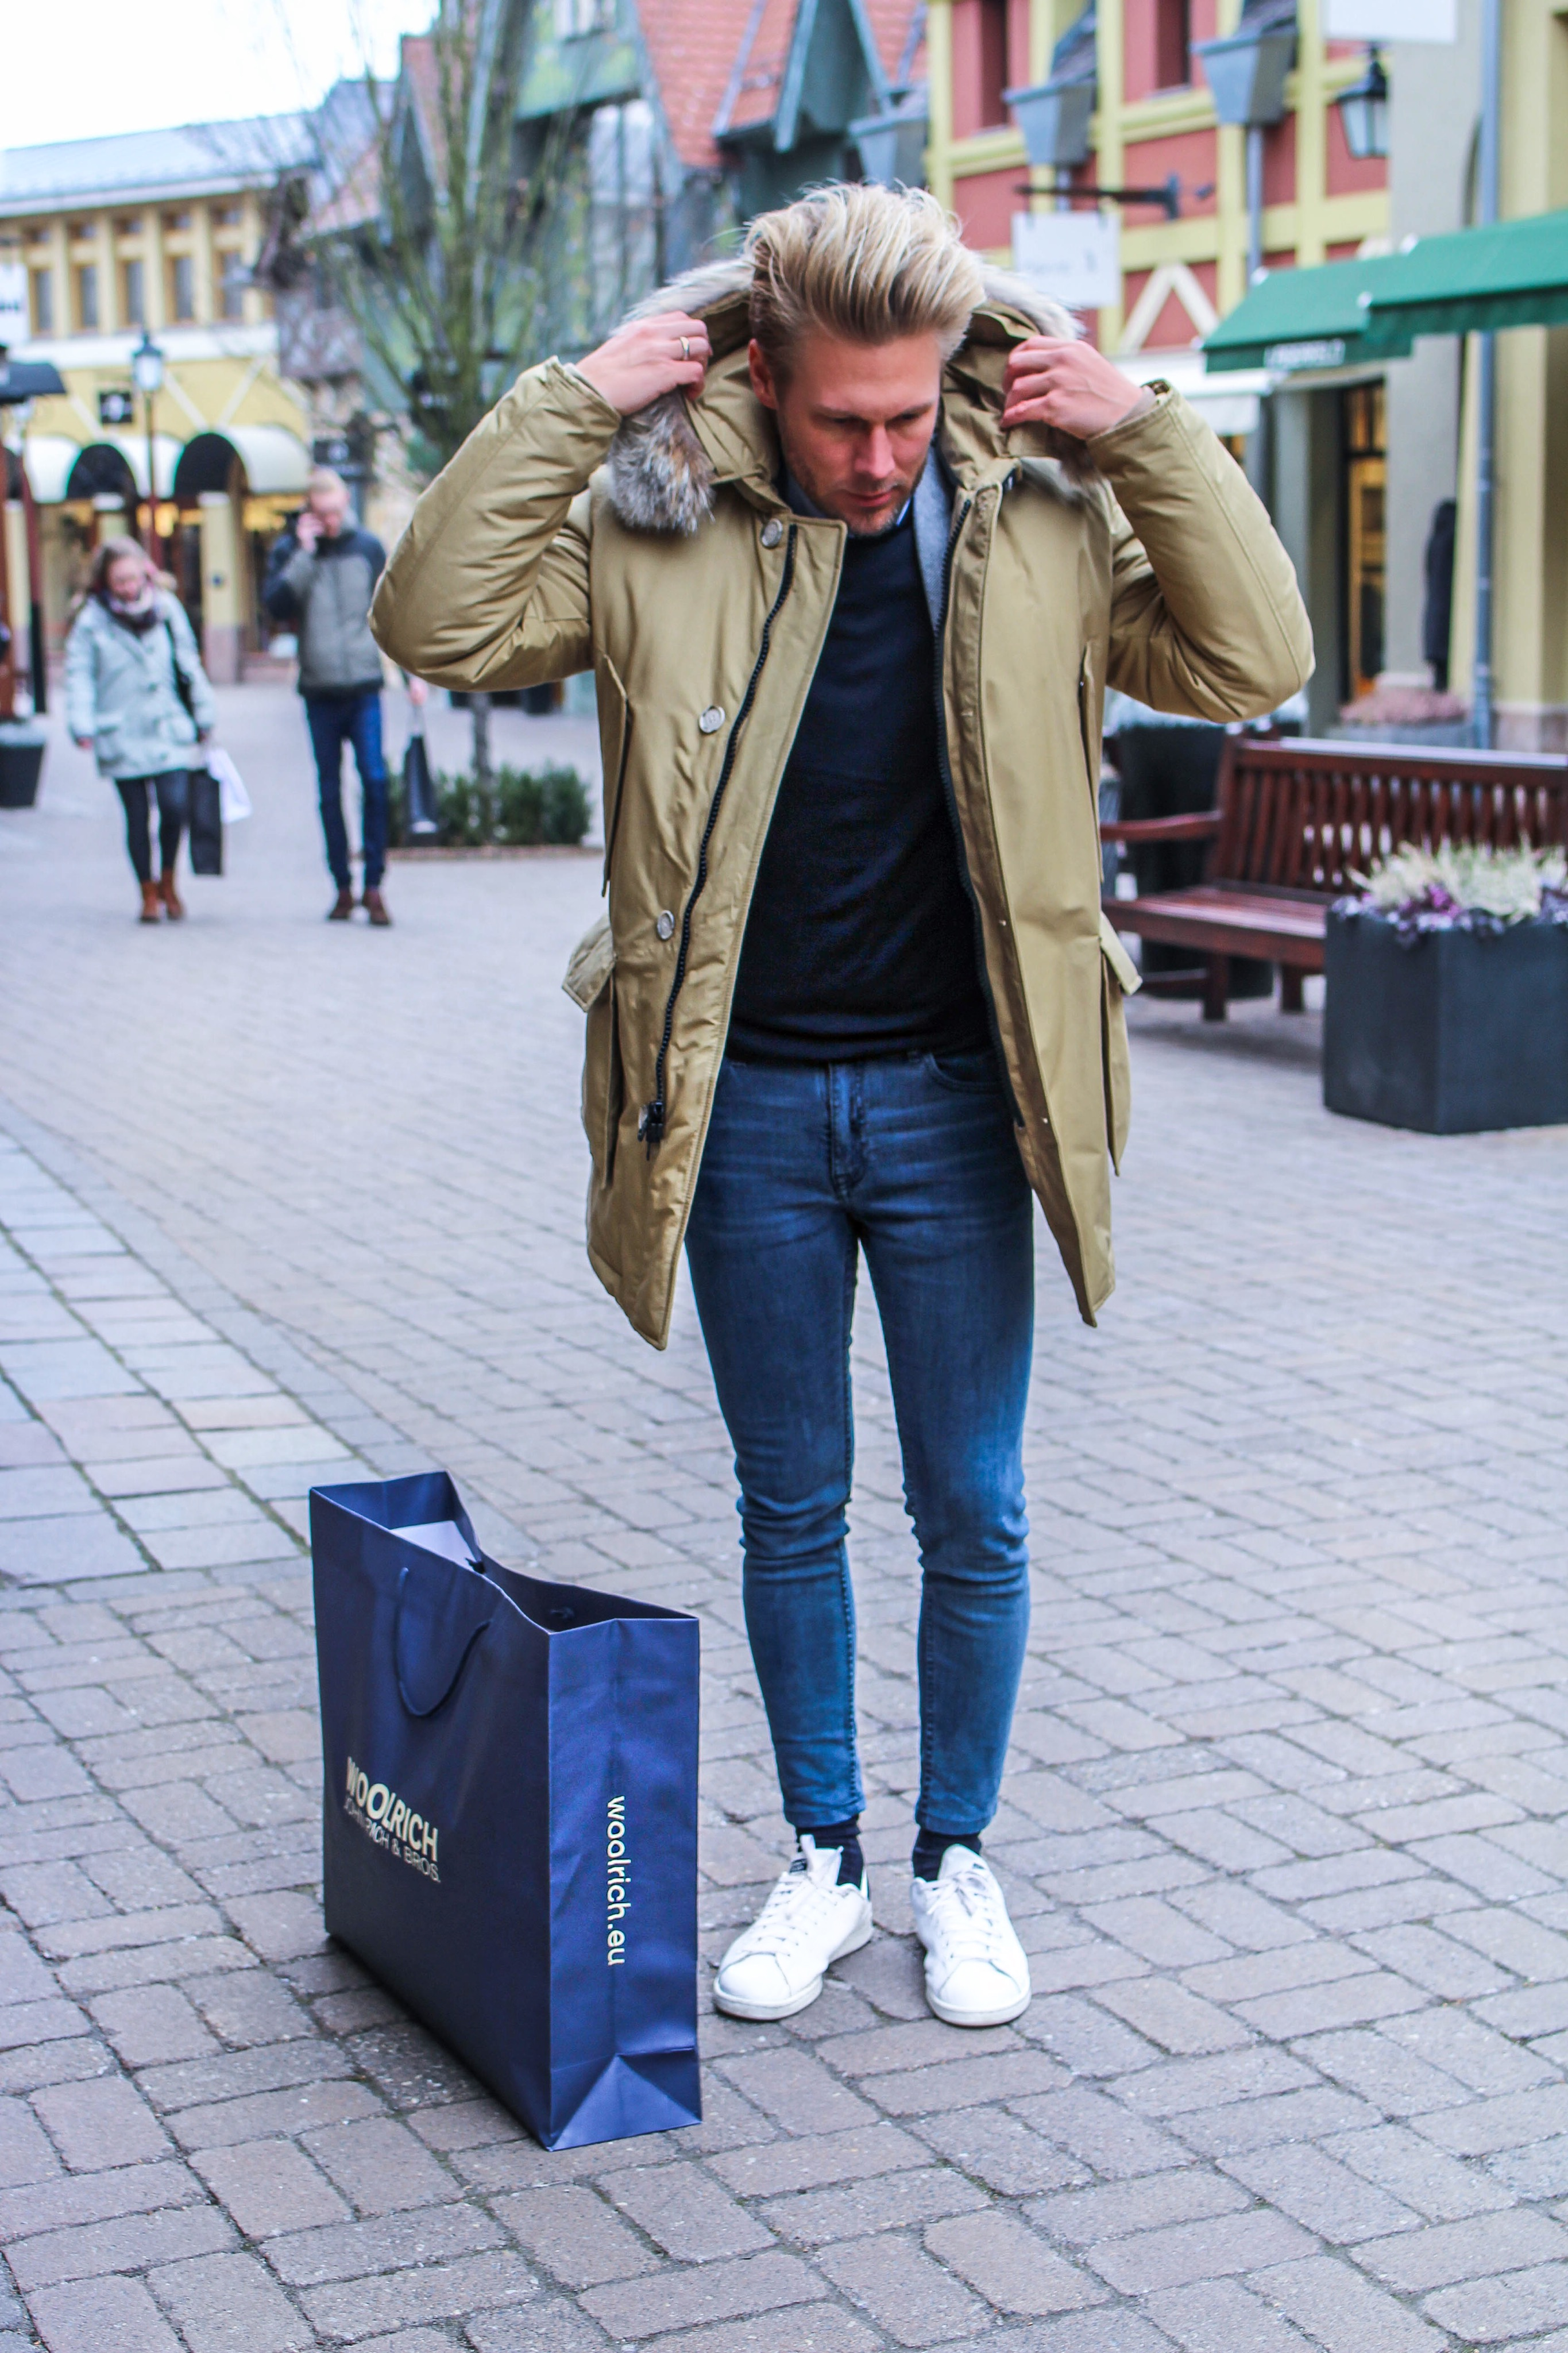 Fashioncircuz by Jenny woolrich-parka-blogger MY SHOPPING DAY IN THE WERTHEIM VILLAGE